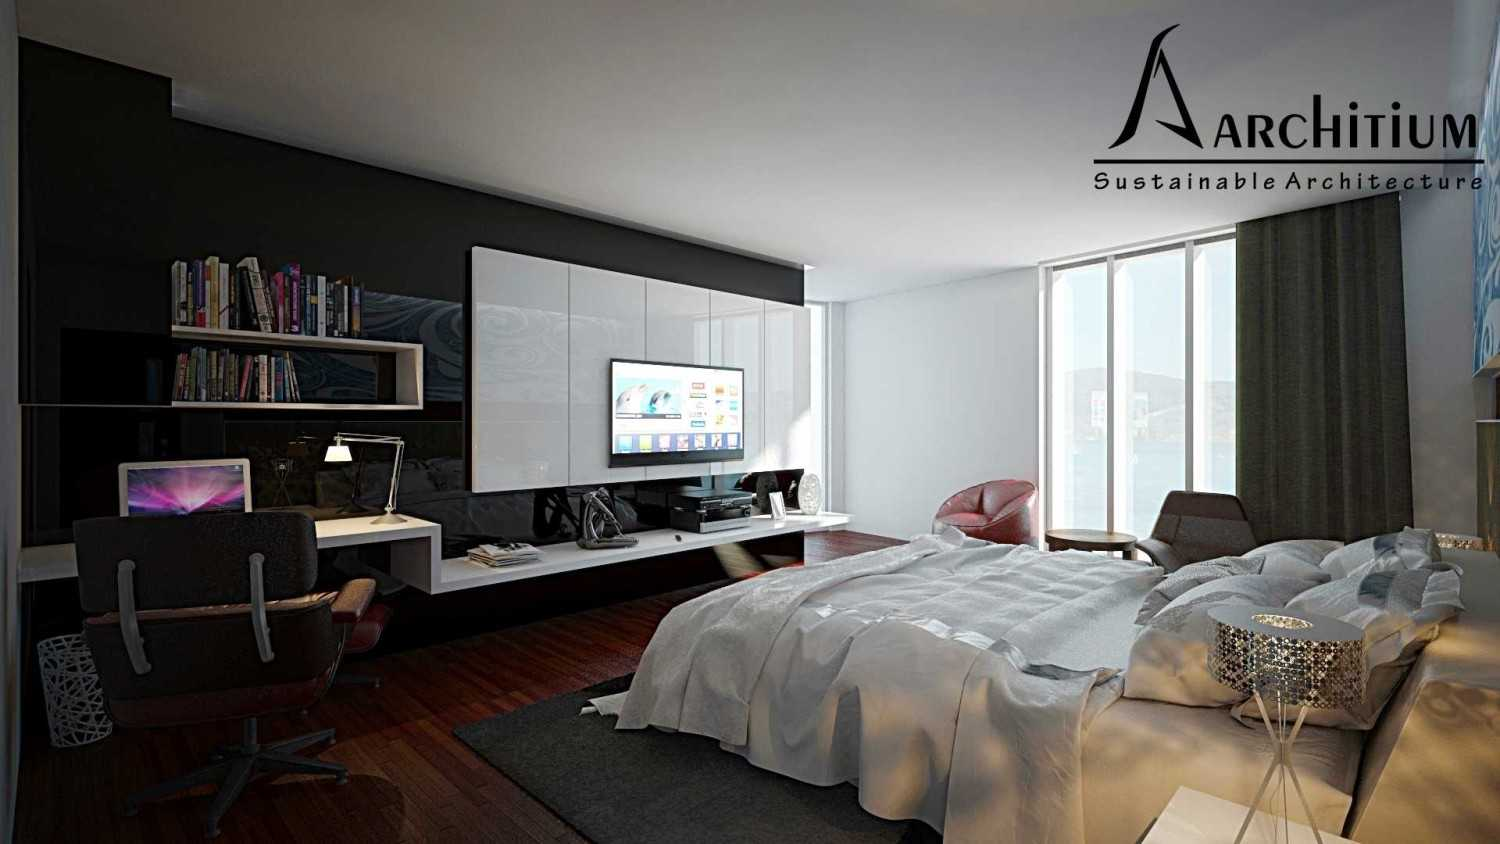 Architium Design Penthouse At Regatta Apartment Regatta Apartment, Jakarta Regatta Apartment, Jakarta Master-Bed-1 Minimalis 27423